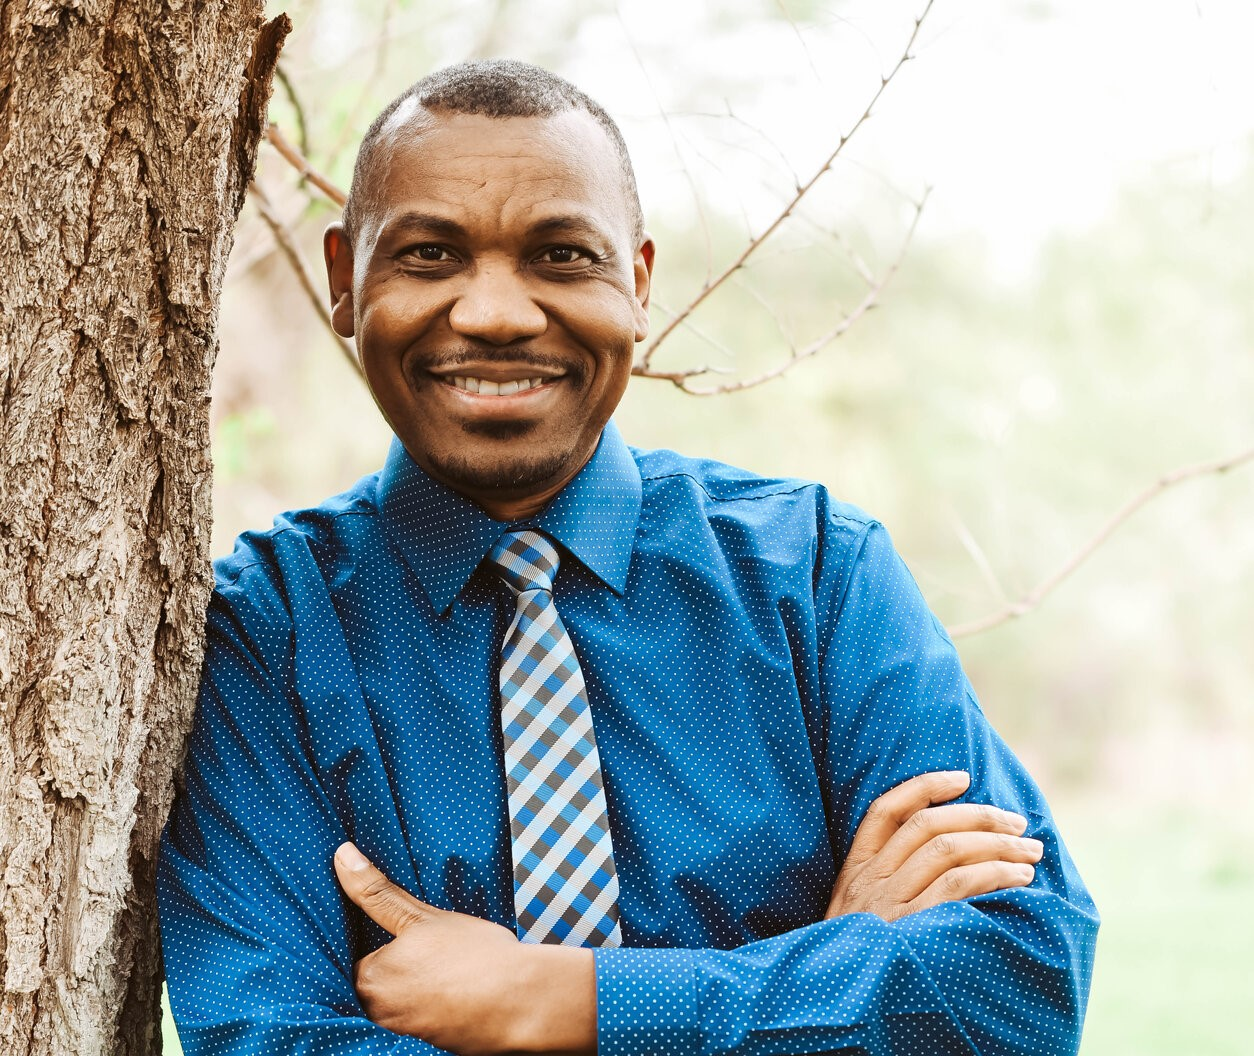 The Kingdom Impact Ministry led by Dr Andrew Nkoyoyo reaches audiences in 195 countries daily through its broadcast and streaming media